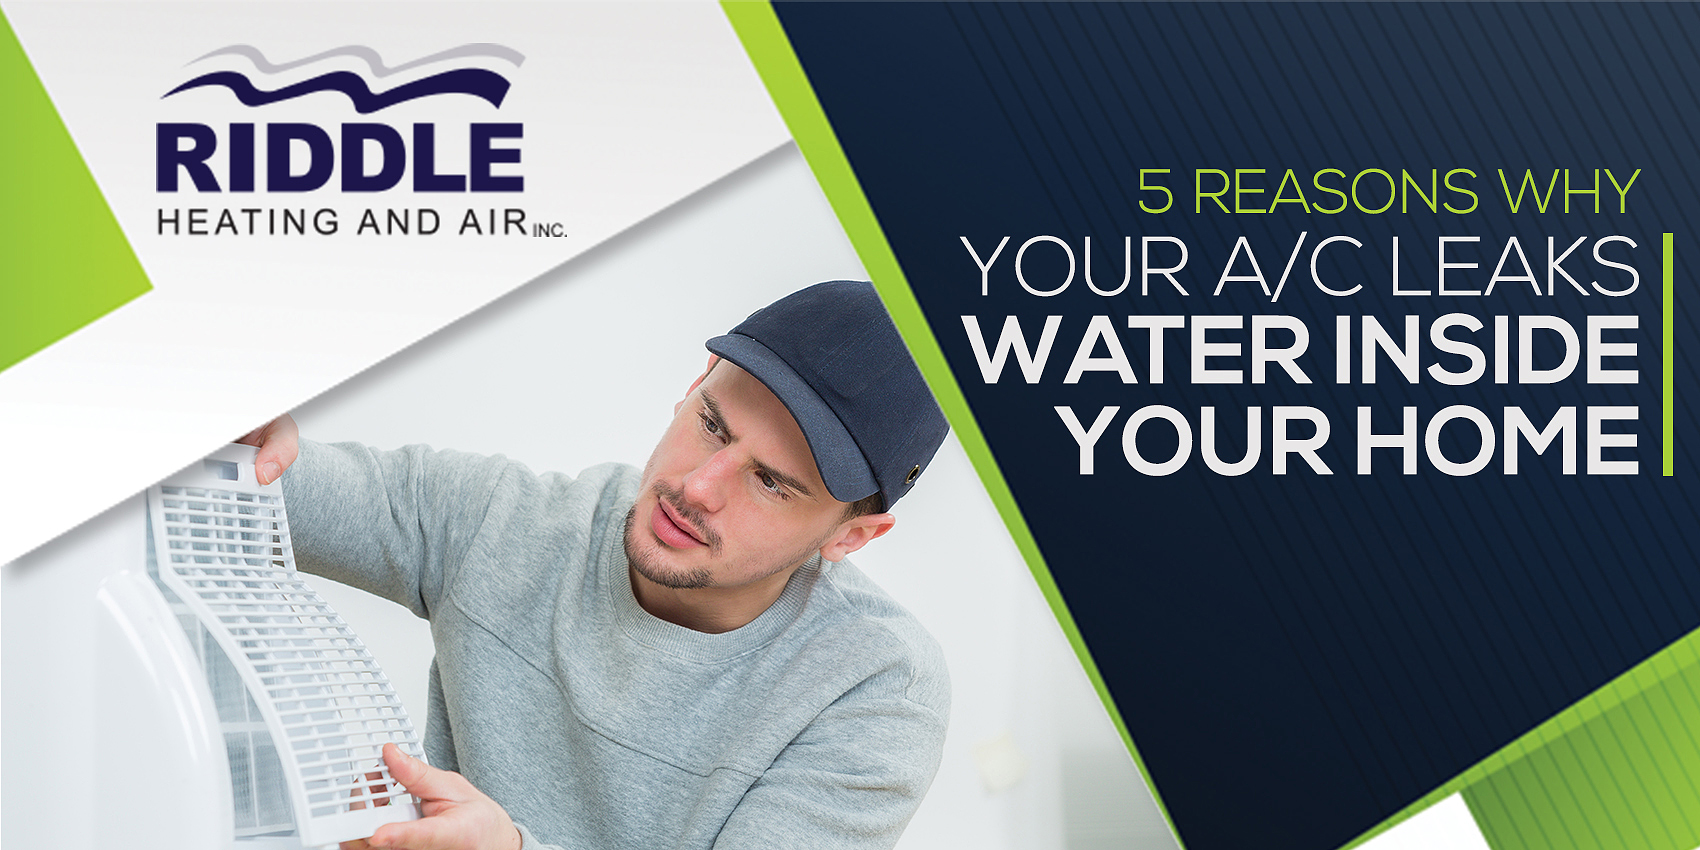 5 Reasons Why Your A/C Leaks Water Inside Your Home